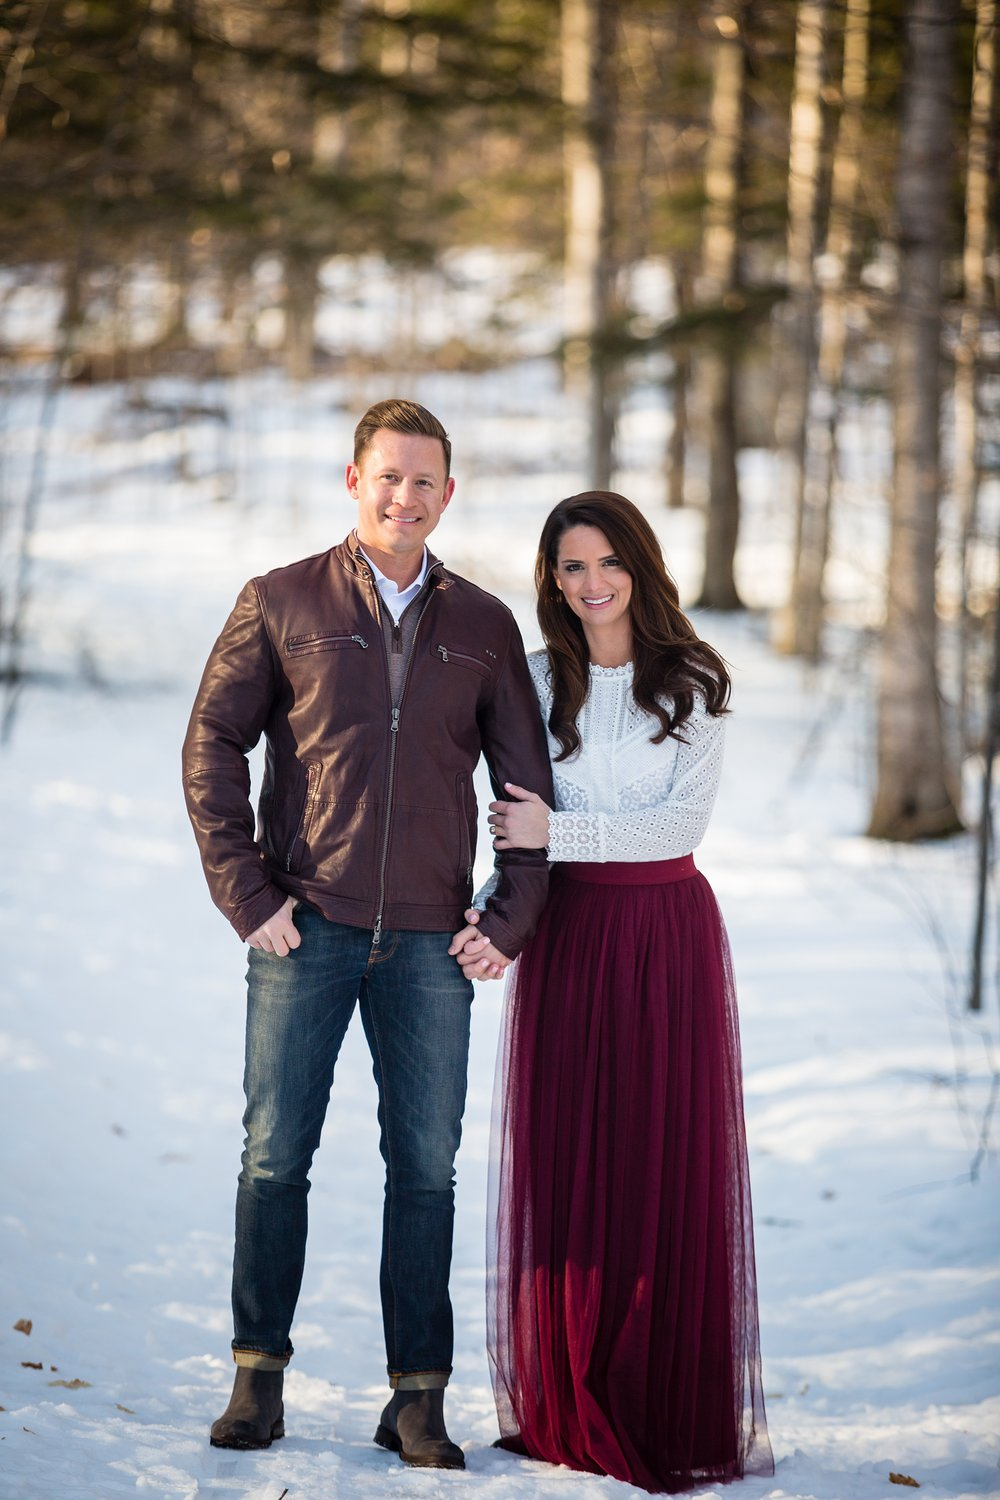 Brandon_Shafer_Photography_Nate_Chelsea_Engagment_Photography_0062.jpg